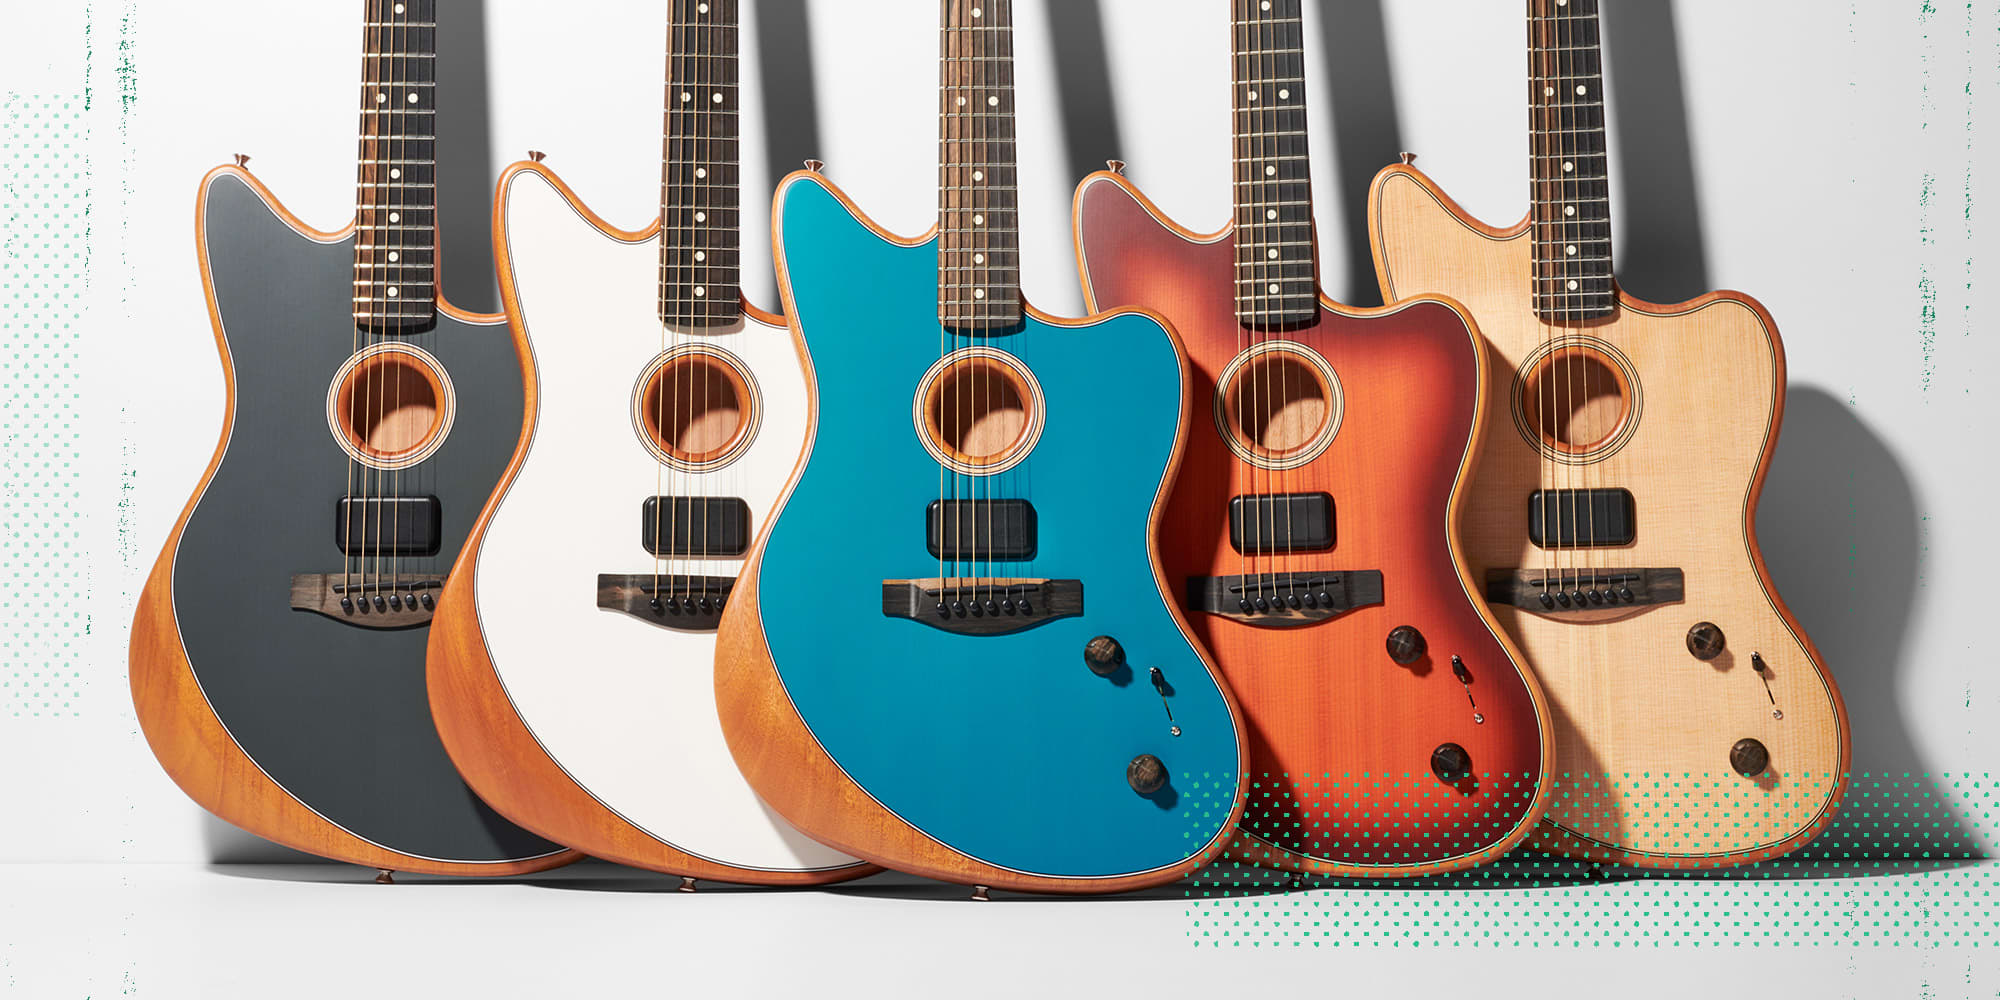 The Fender American Acoustasonic Jazzmaster in every color